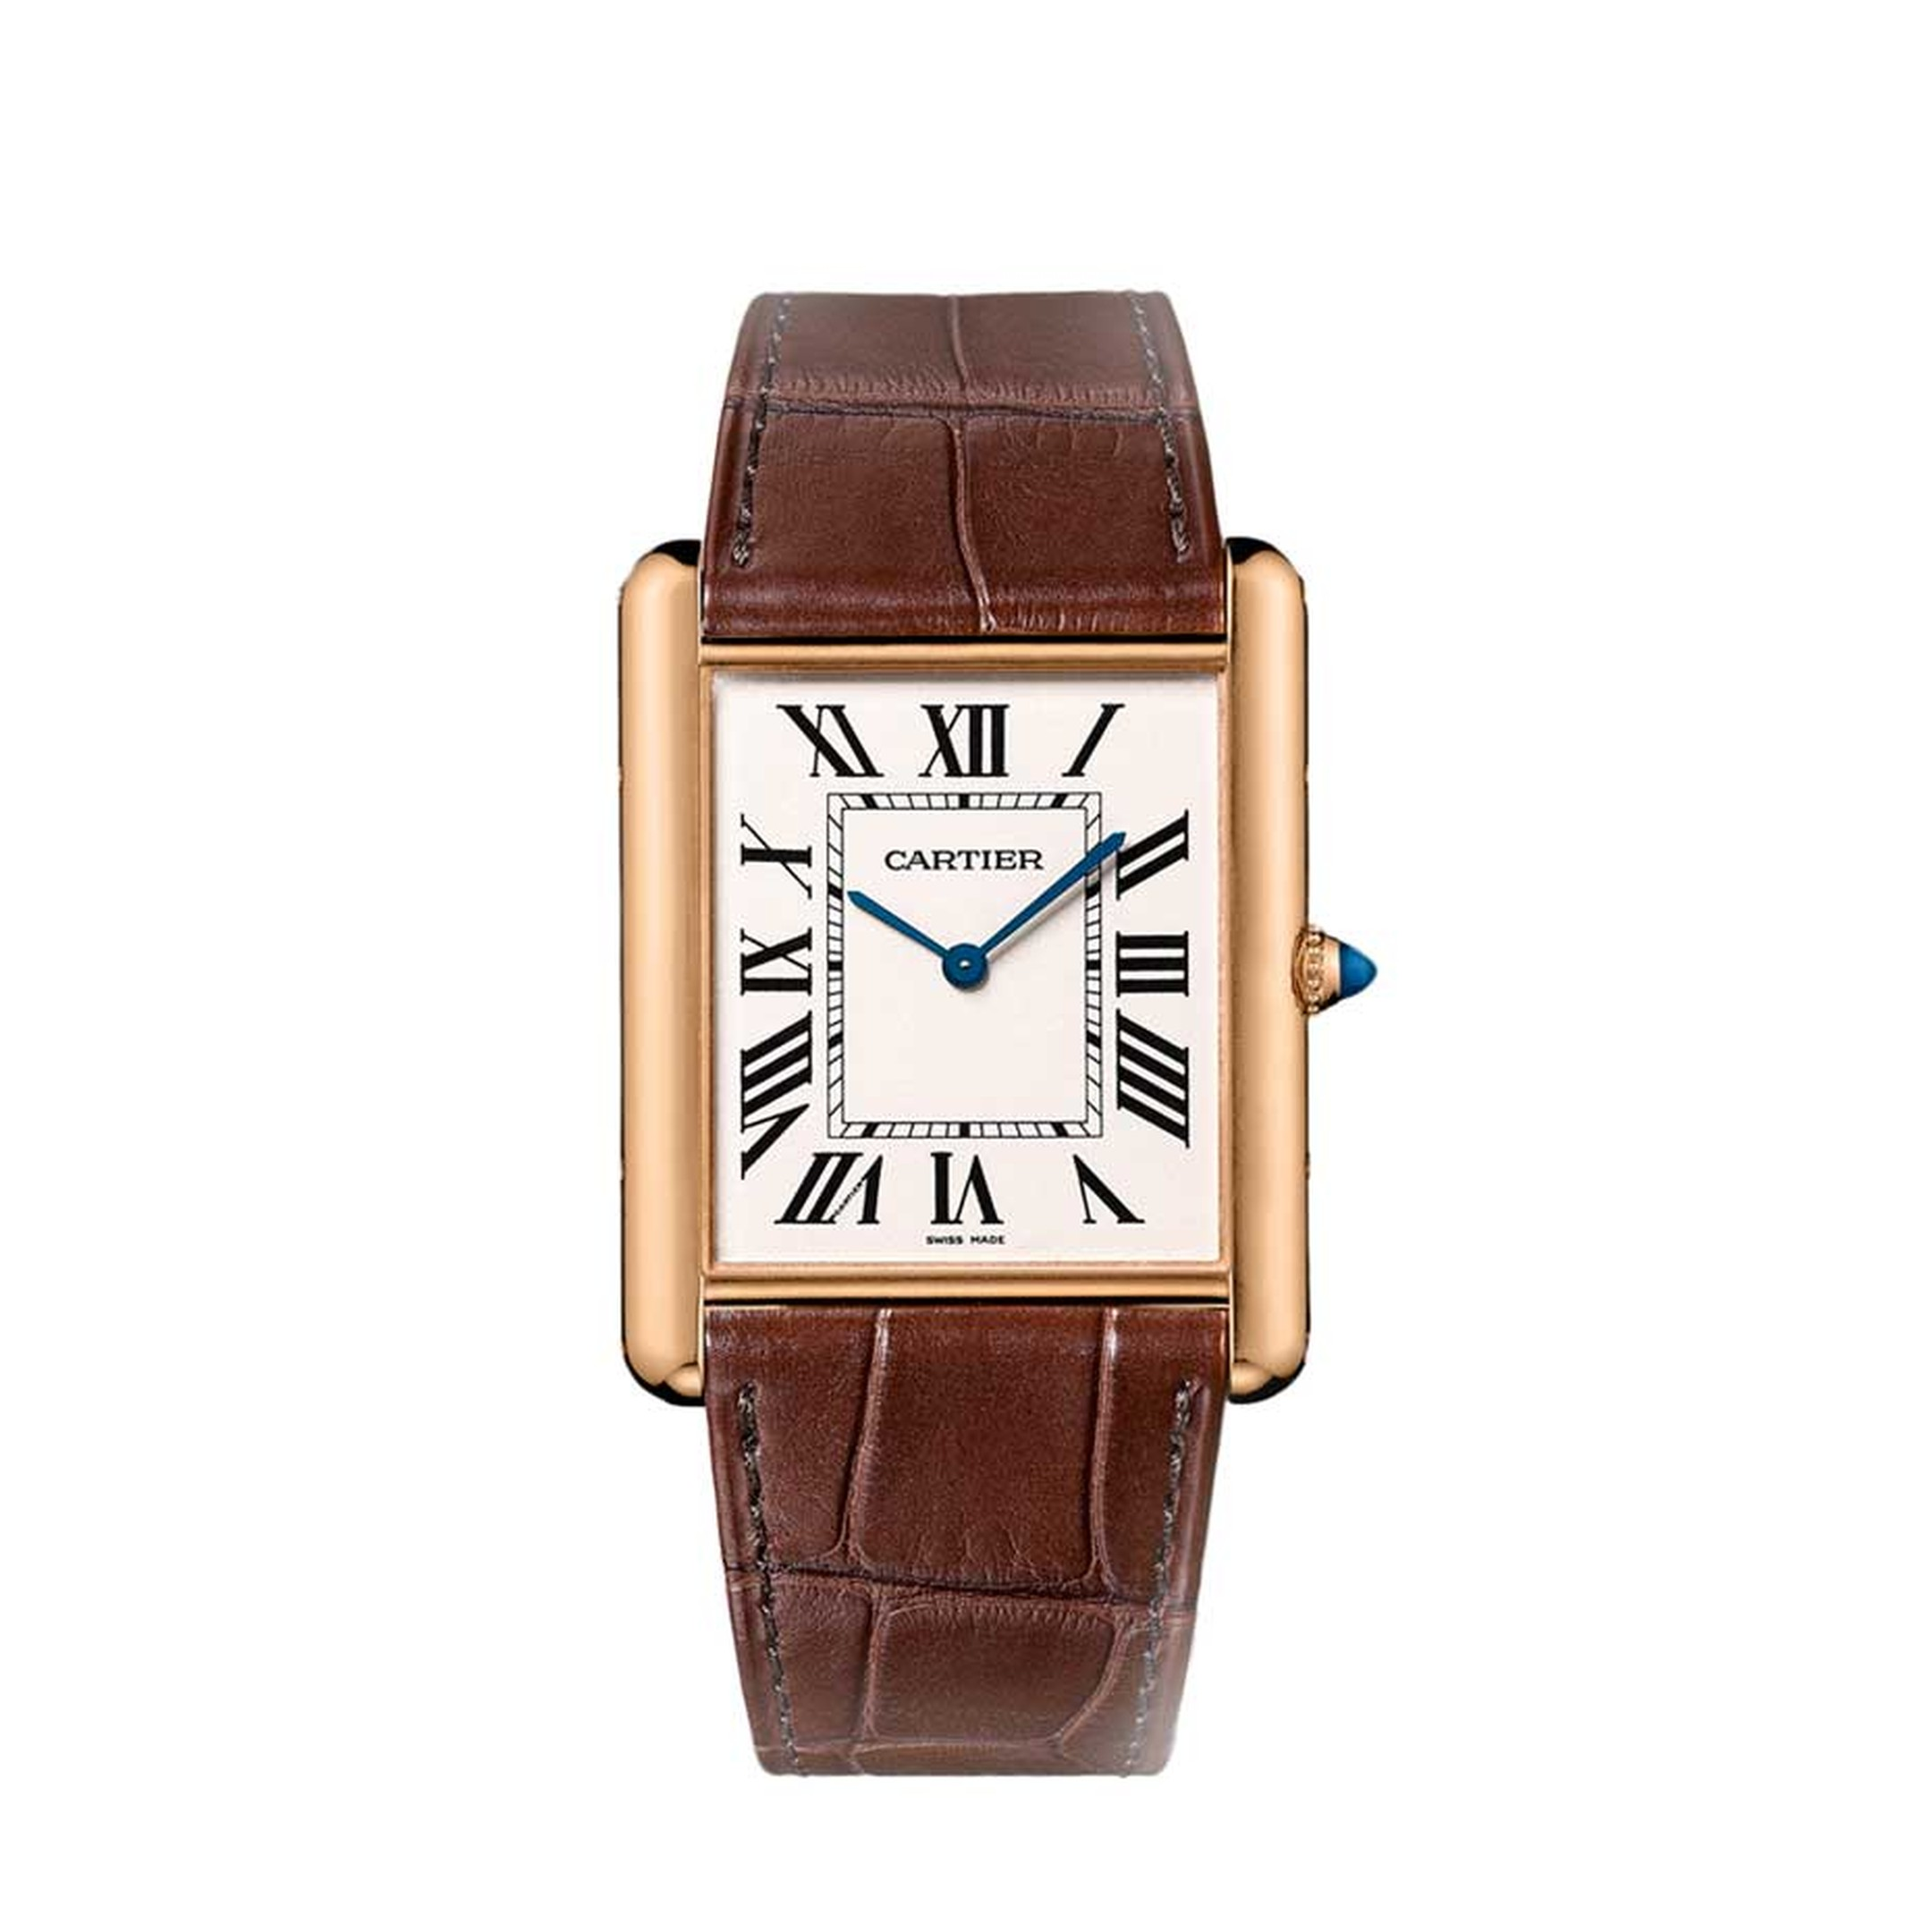 The iconic Cartier Tank watch. Towards the end of World War I, Louis Cartier became fascinated by the boxy profile of the Renault armoured battle tank and decided to model a watch on its clean, rectilinear design, giving birth to the Cartier Tank watch in